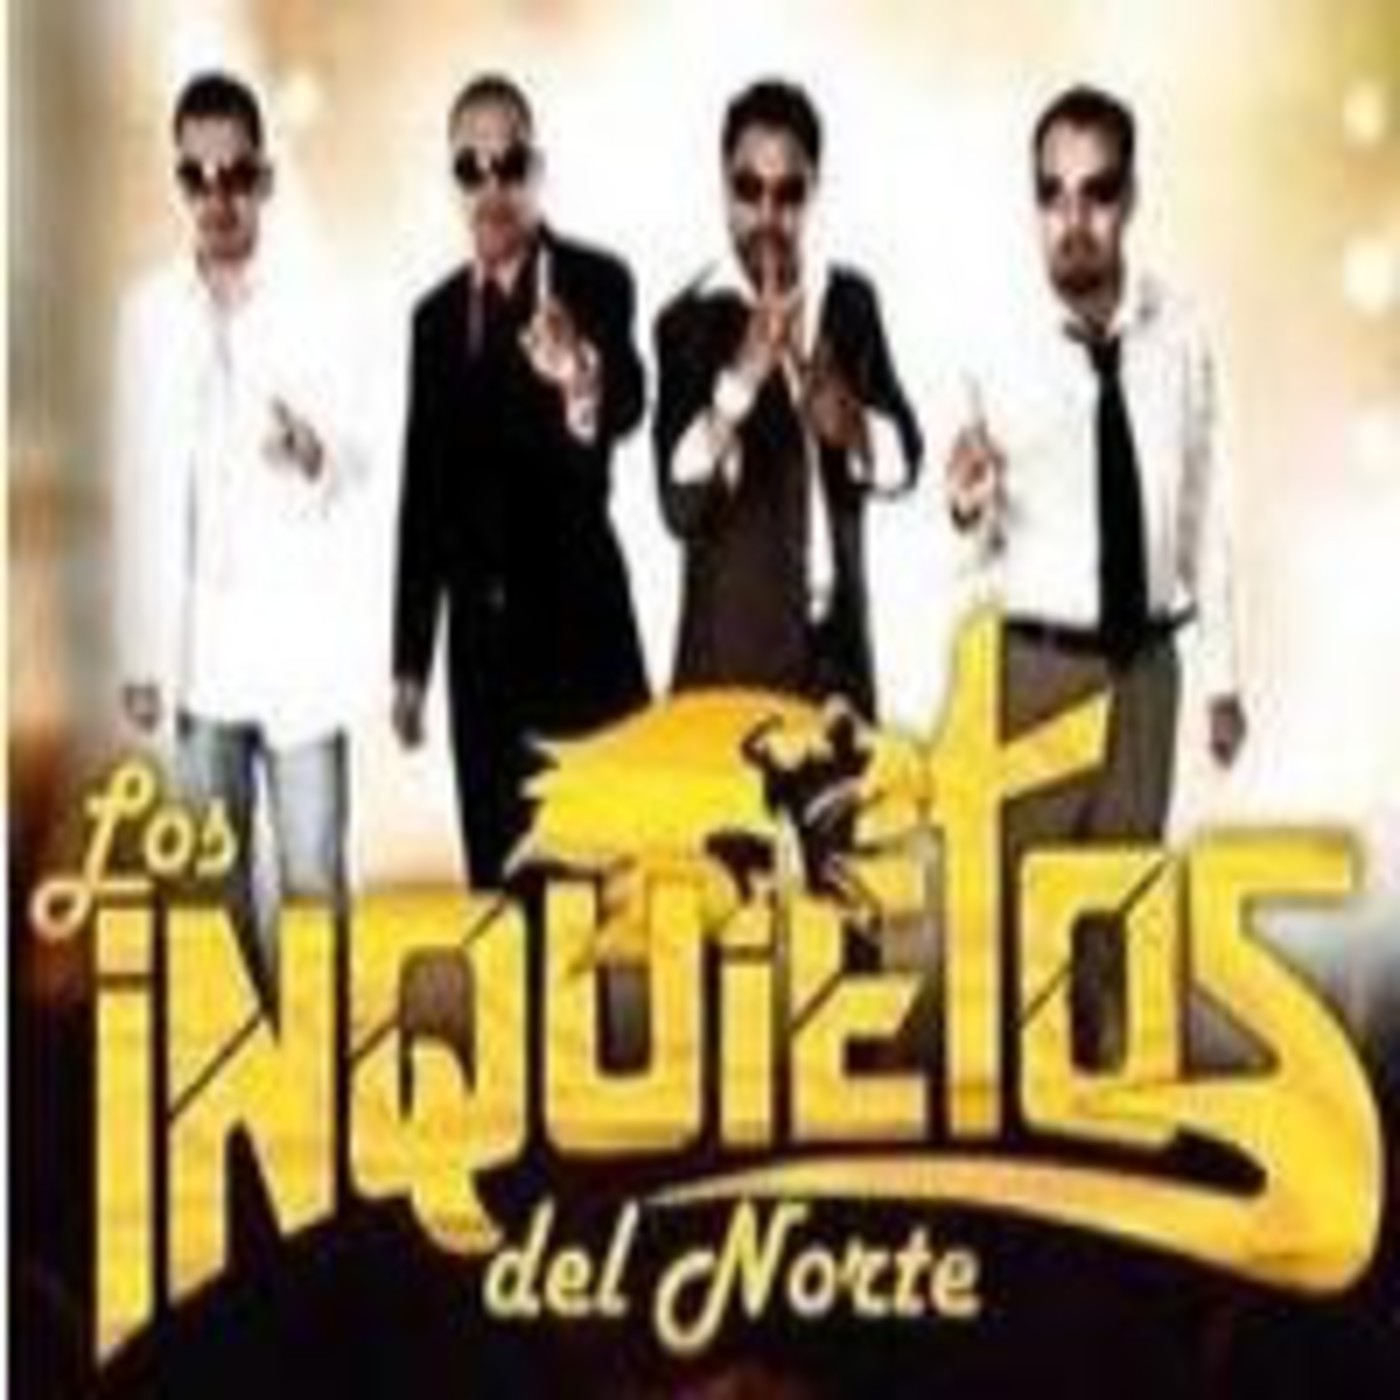 Mix de los inquietos del norte